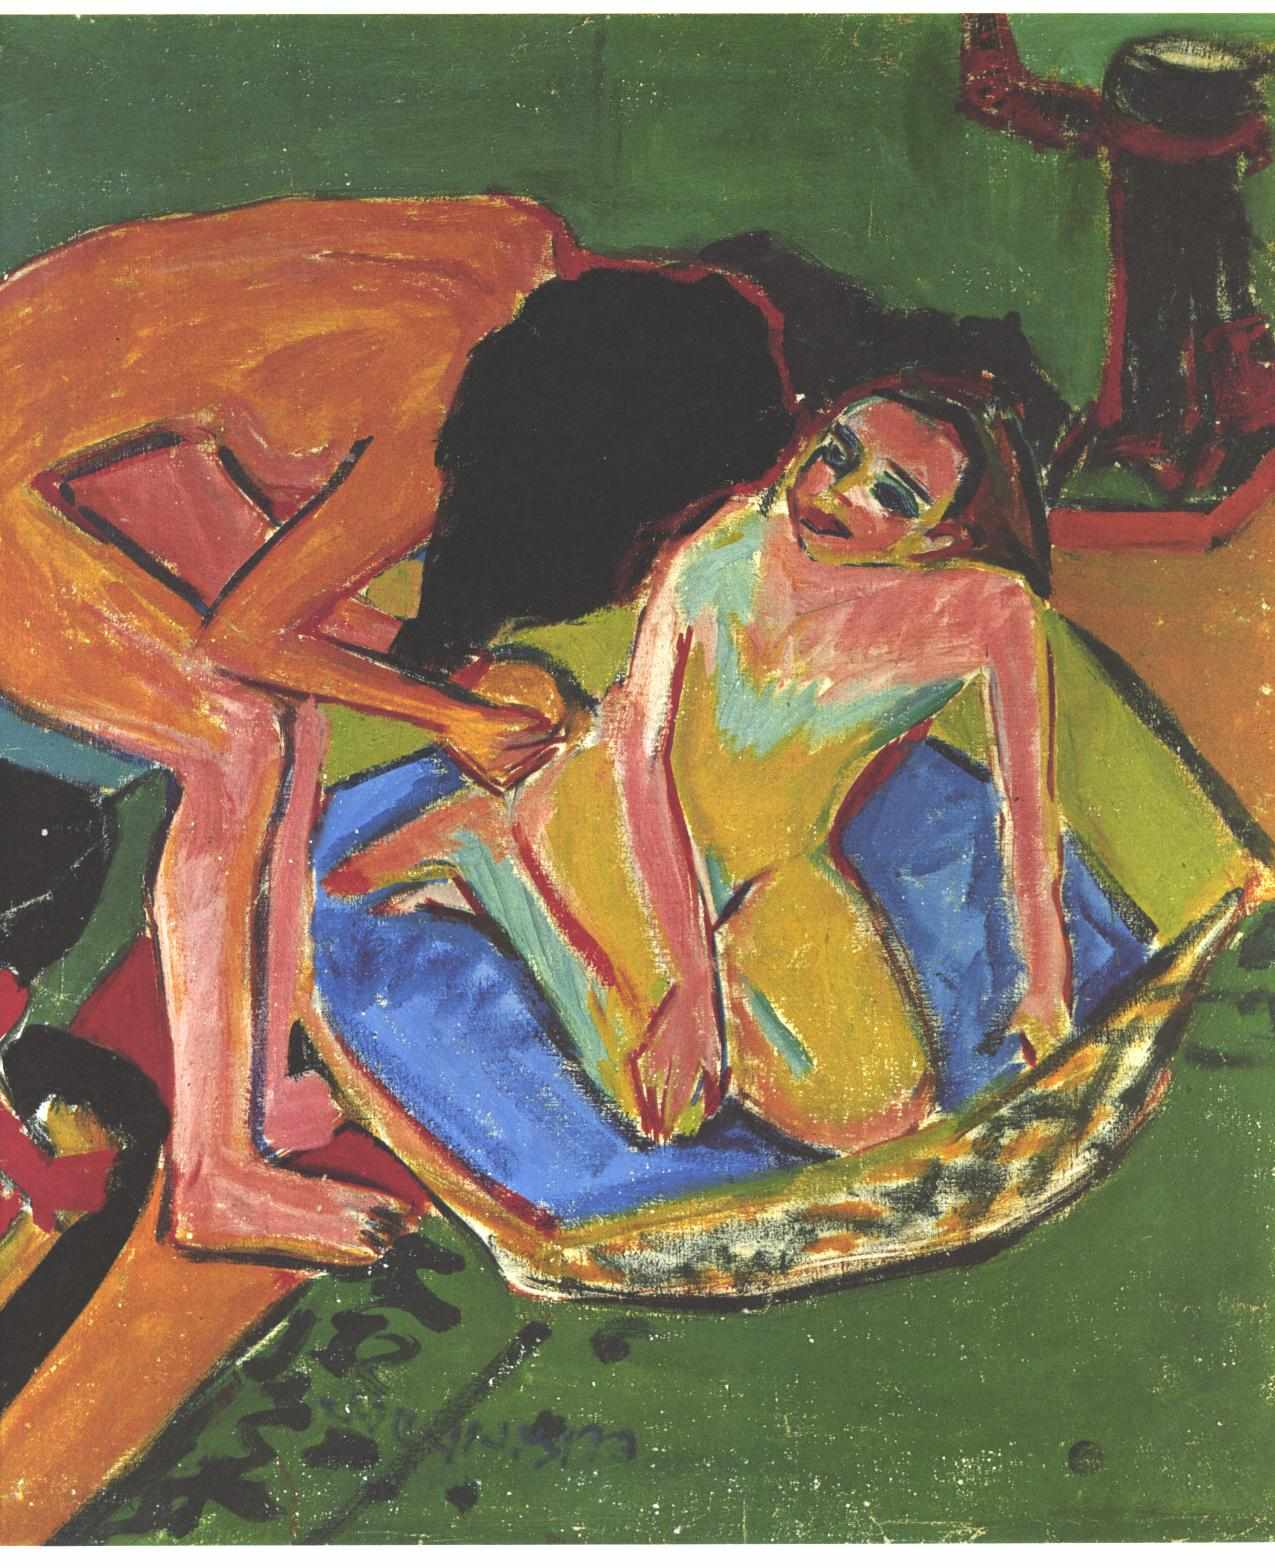 Marcella and Fränzi in the Atelier, Ernst Ludwig Kirchner